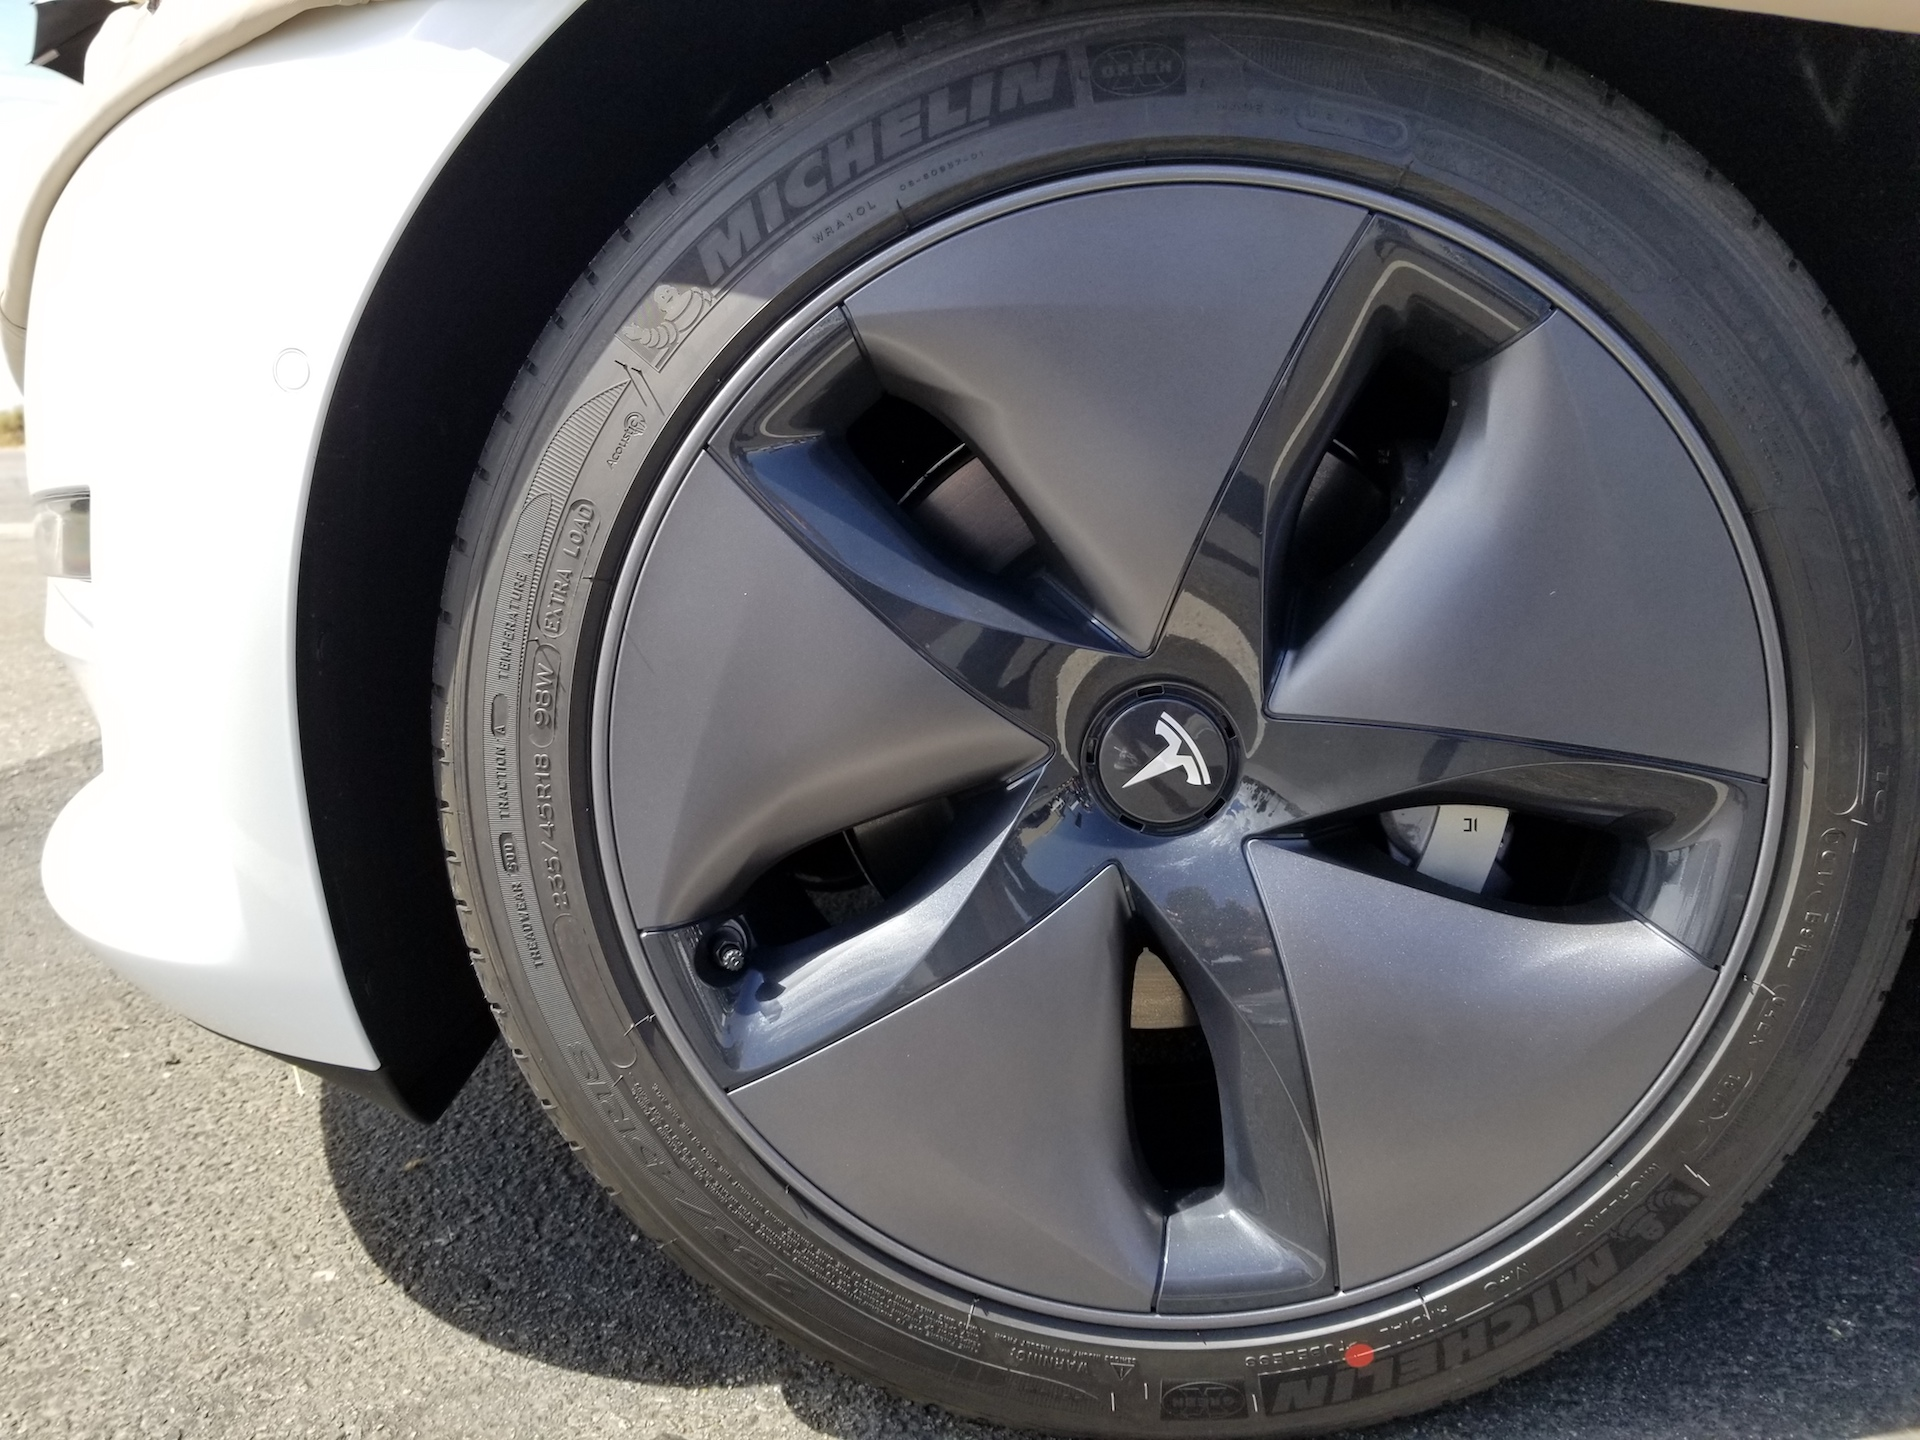 18 Quot Vs 19 Quot Tires For Ride Quality Cabin Noise On Model 3